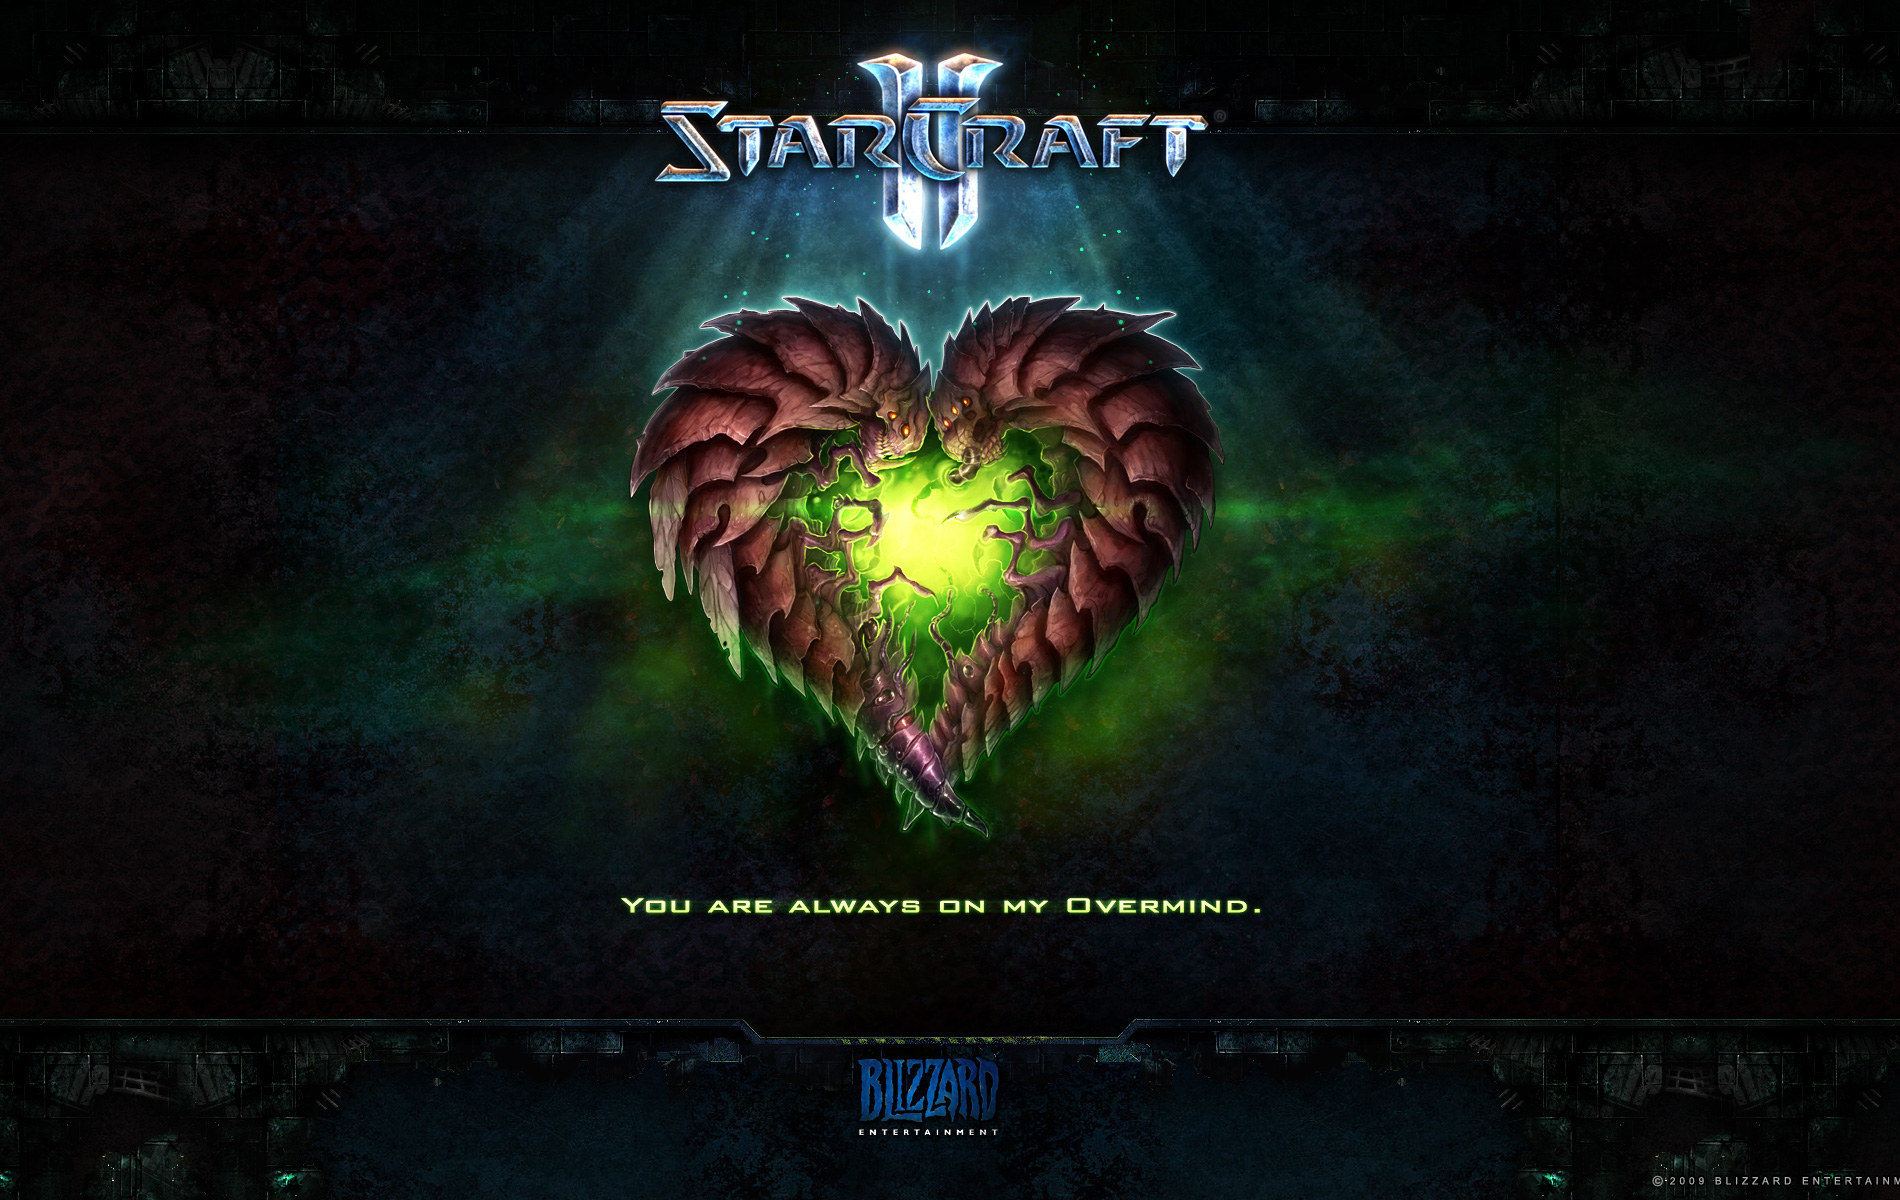 Wallpaper Jeux video StarCraft 2 Saint-Valentin zerg